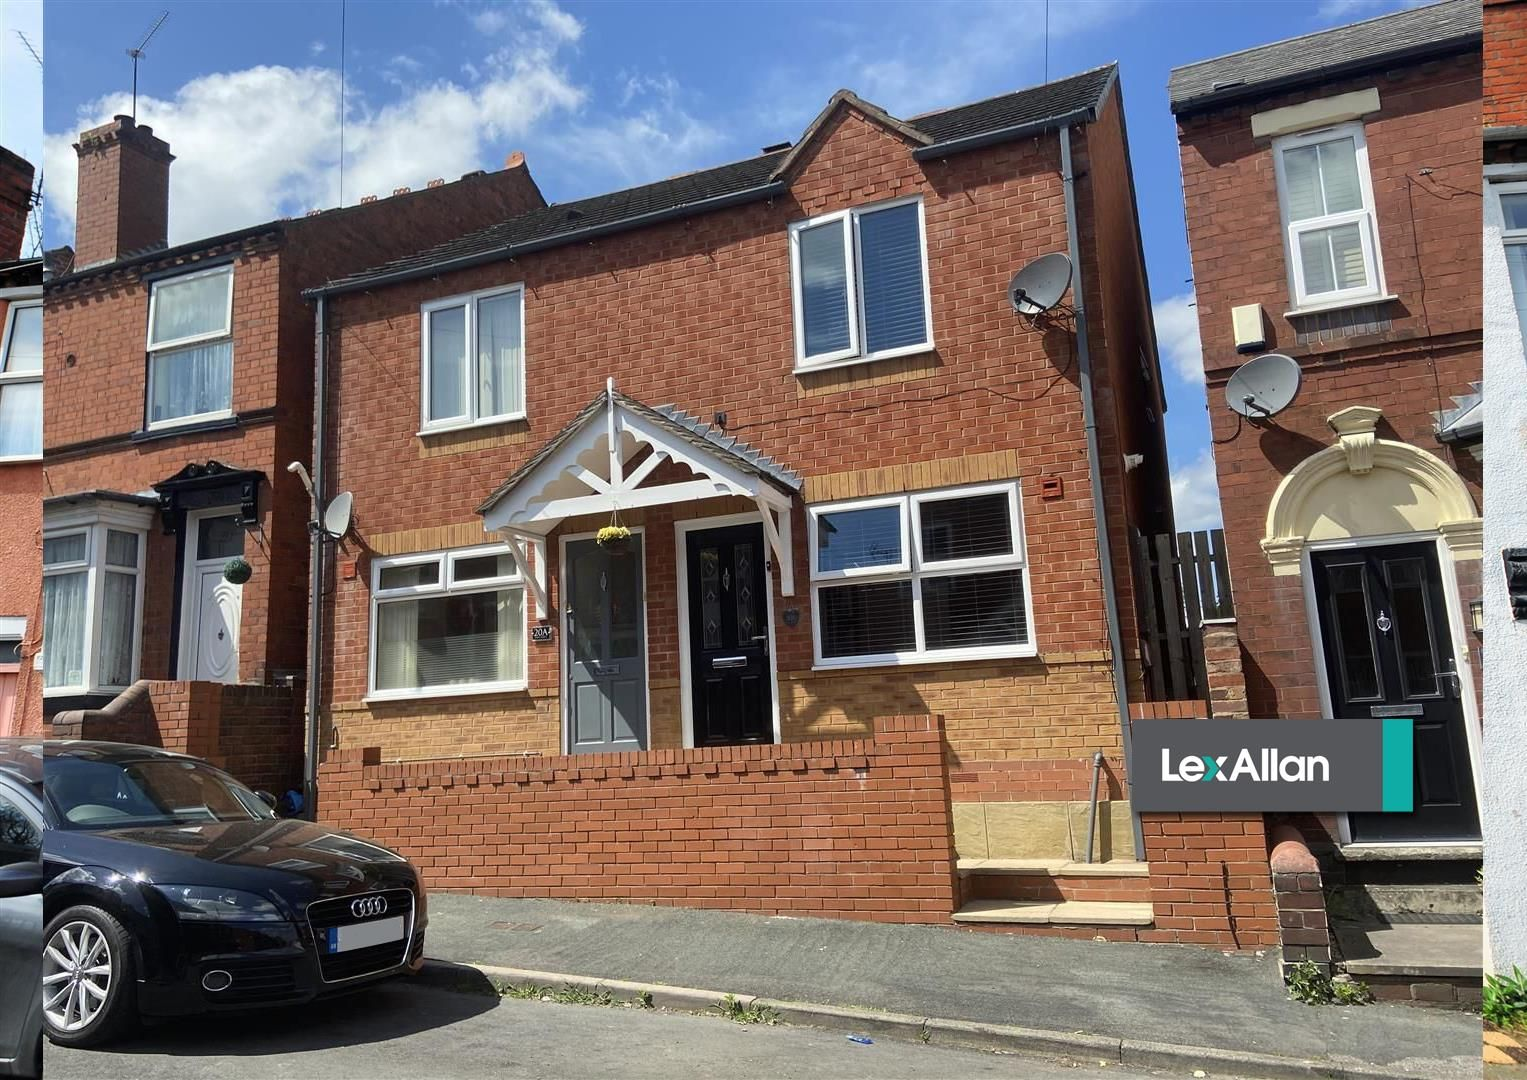 2 bed semi-detached for sale in Lye  - Property Image 17